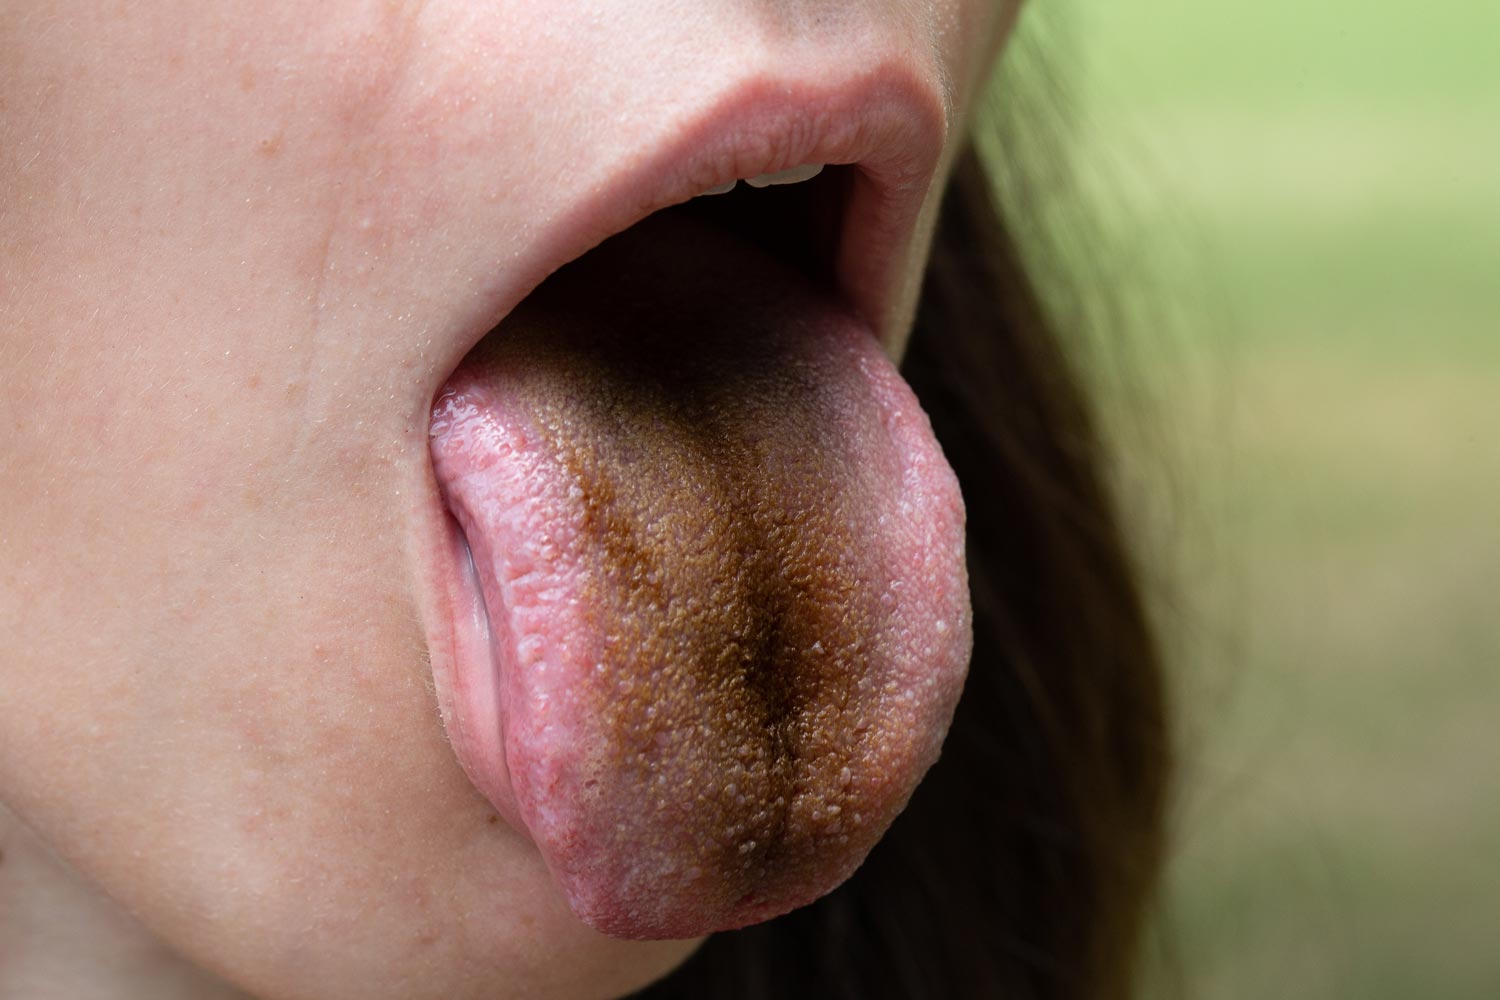 Longer papillae can retain more bacteria which will appear darker or black